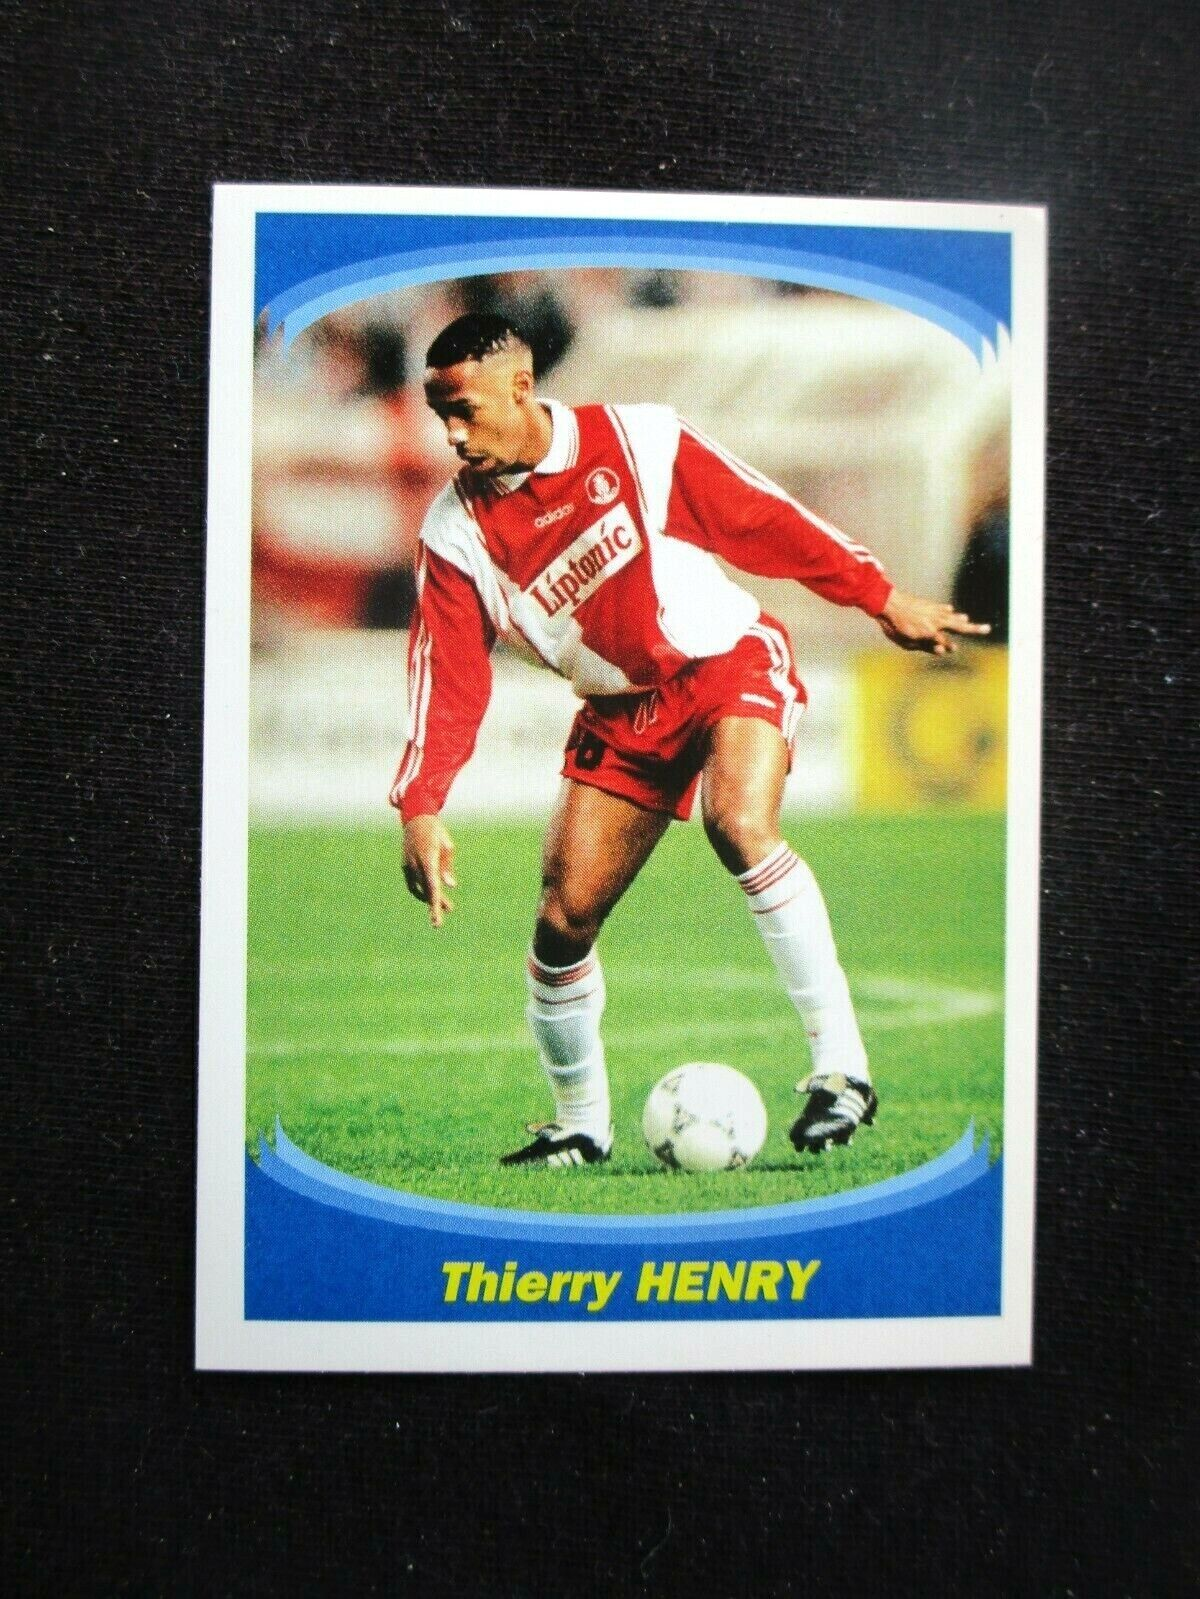 Thierry henry as monaco rookie sticker n° 137  panini superfoot 1997-1998 france